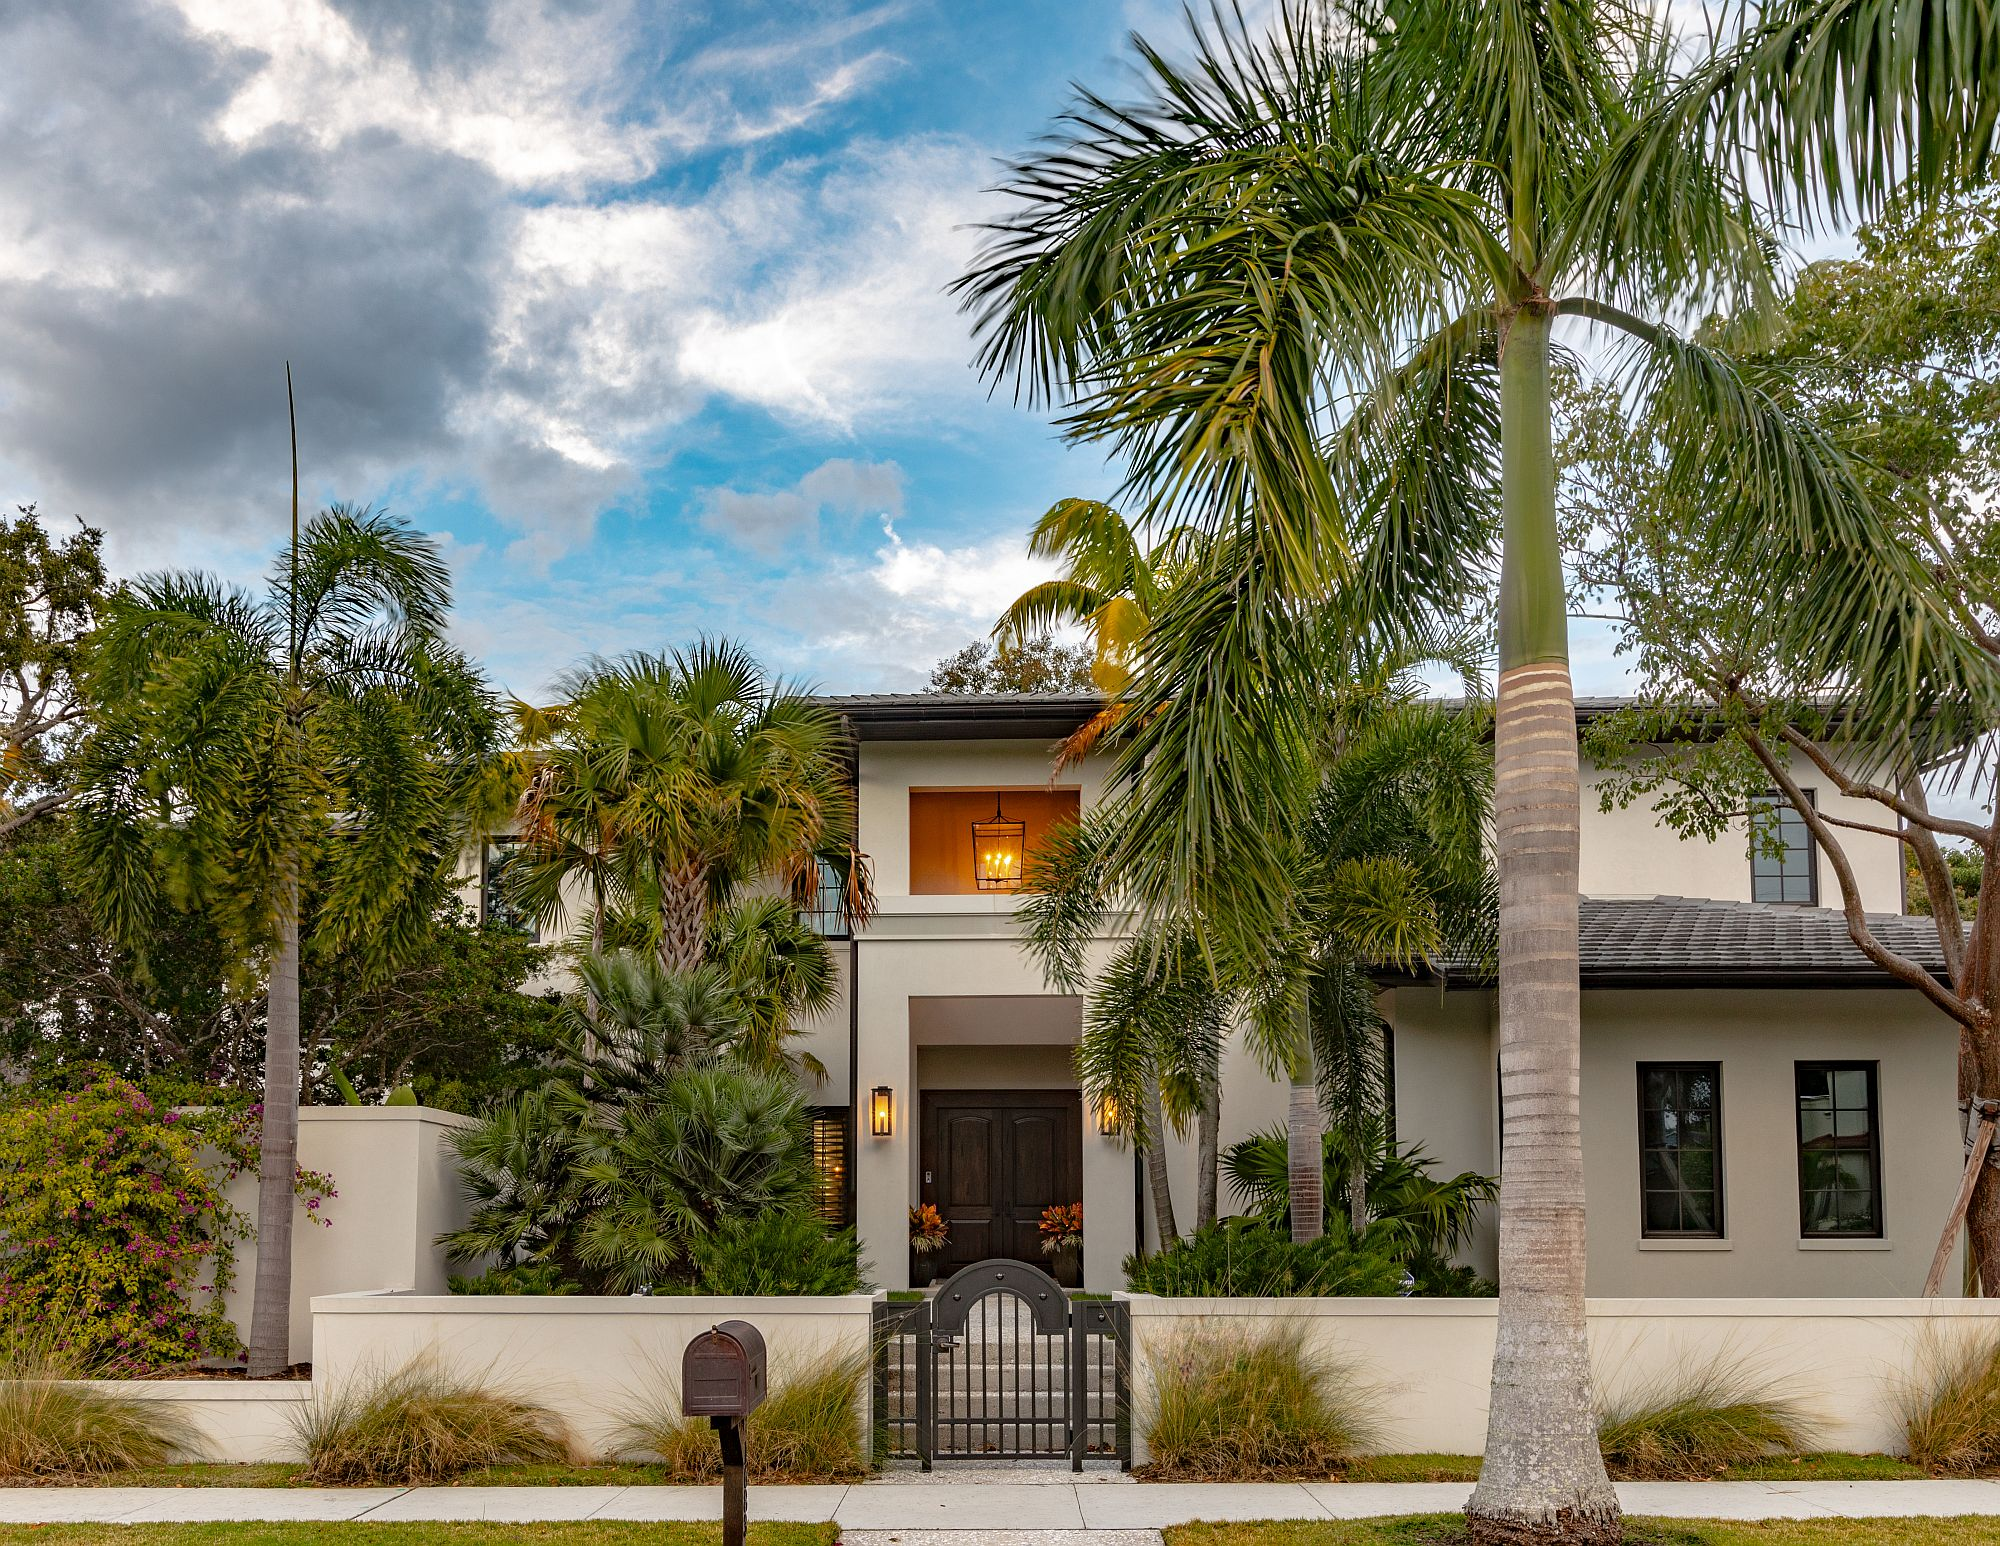 Facade of the luxurious modern home in Sarasota, Florida with a casual contemporary look